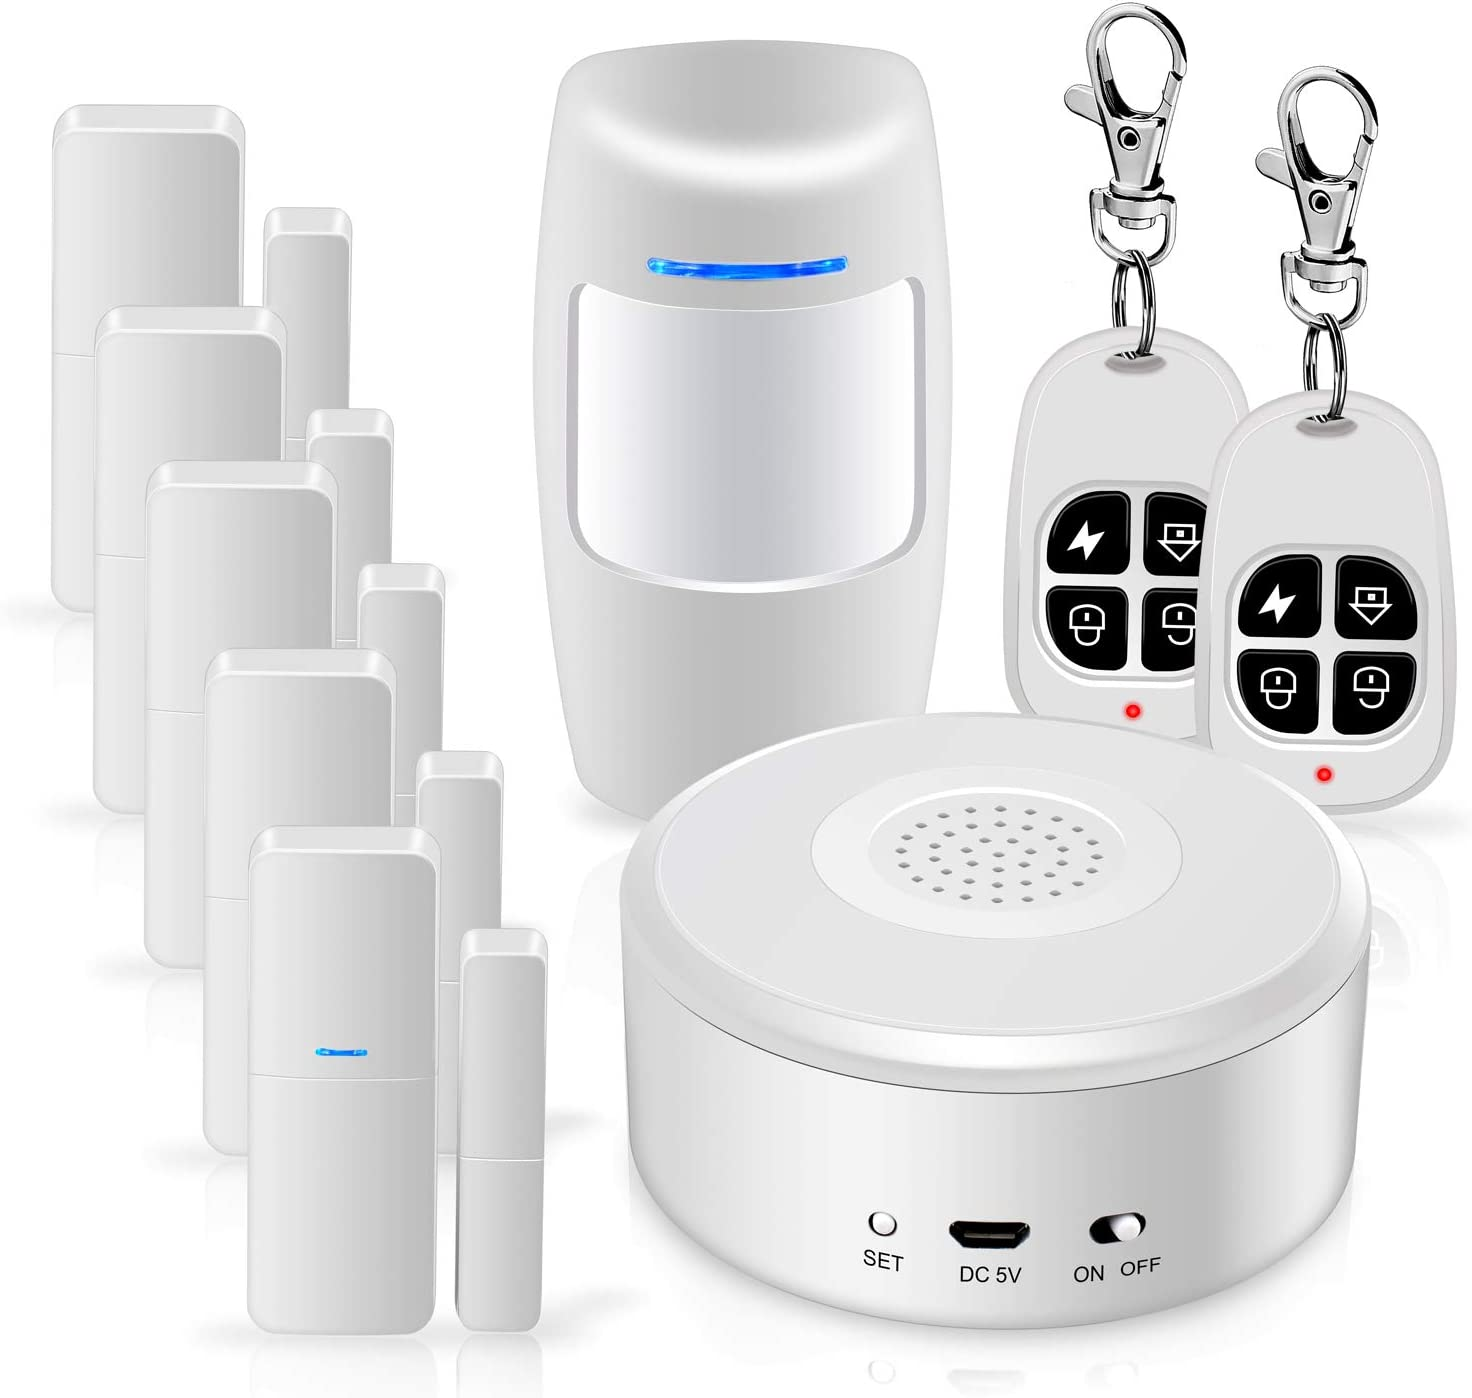 WiFi Alarm System Kit Smart Security System DIY No Monthly Fee Wireless with APP Push and Calling Alarms for Home Apartment